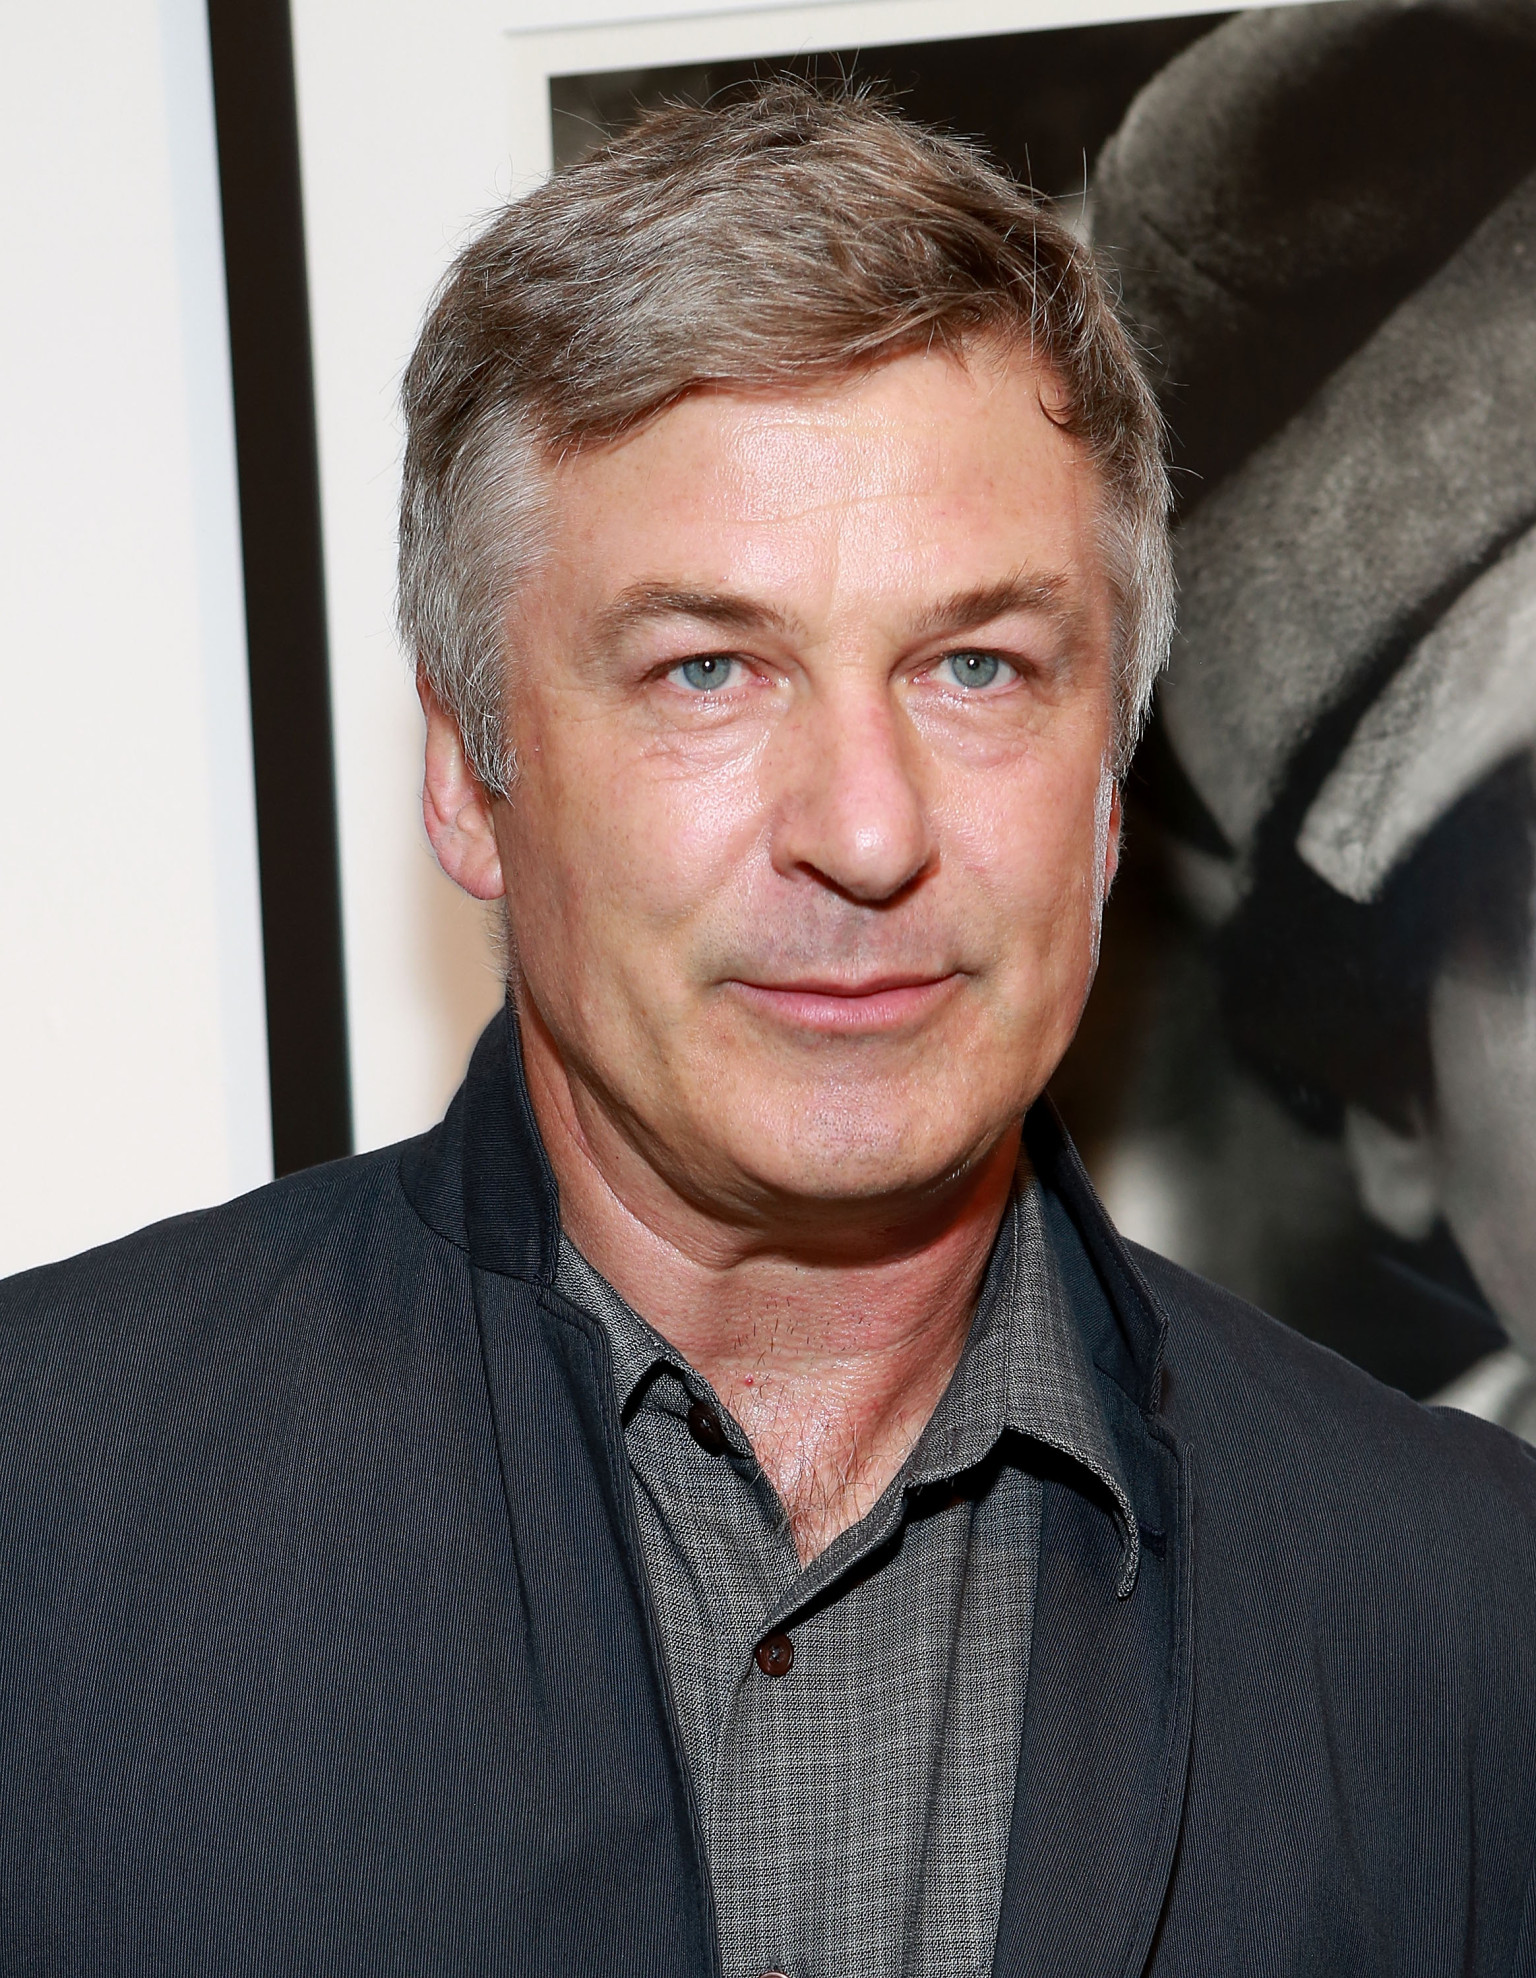 Alec Baldwin - Pictures, Images and Photos - IsuCheer Alec Baldwin Facebook